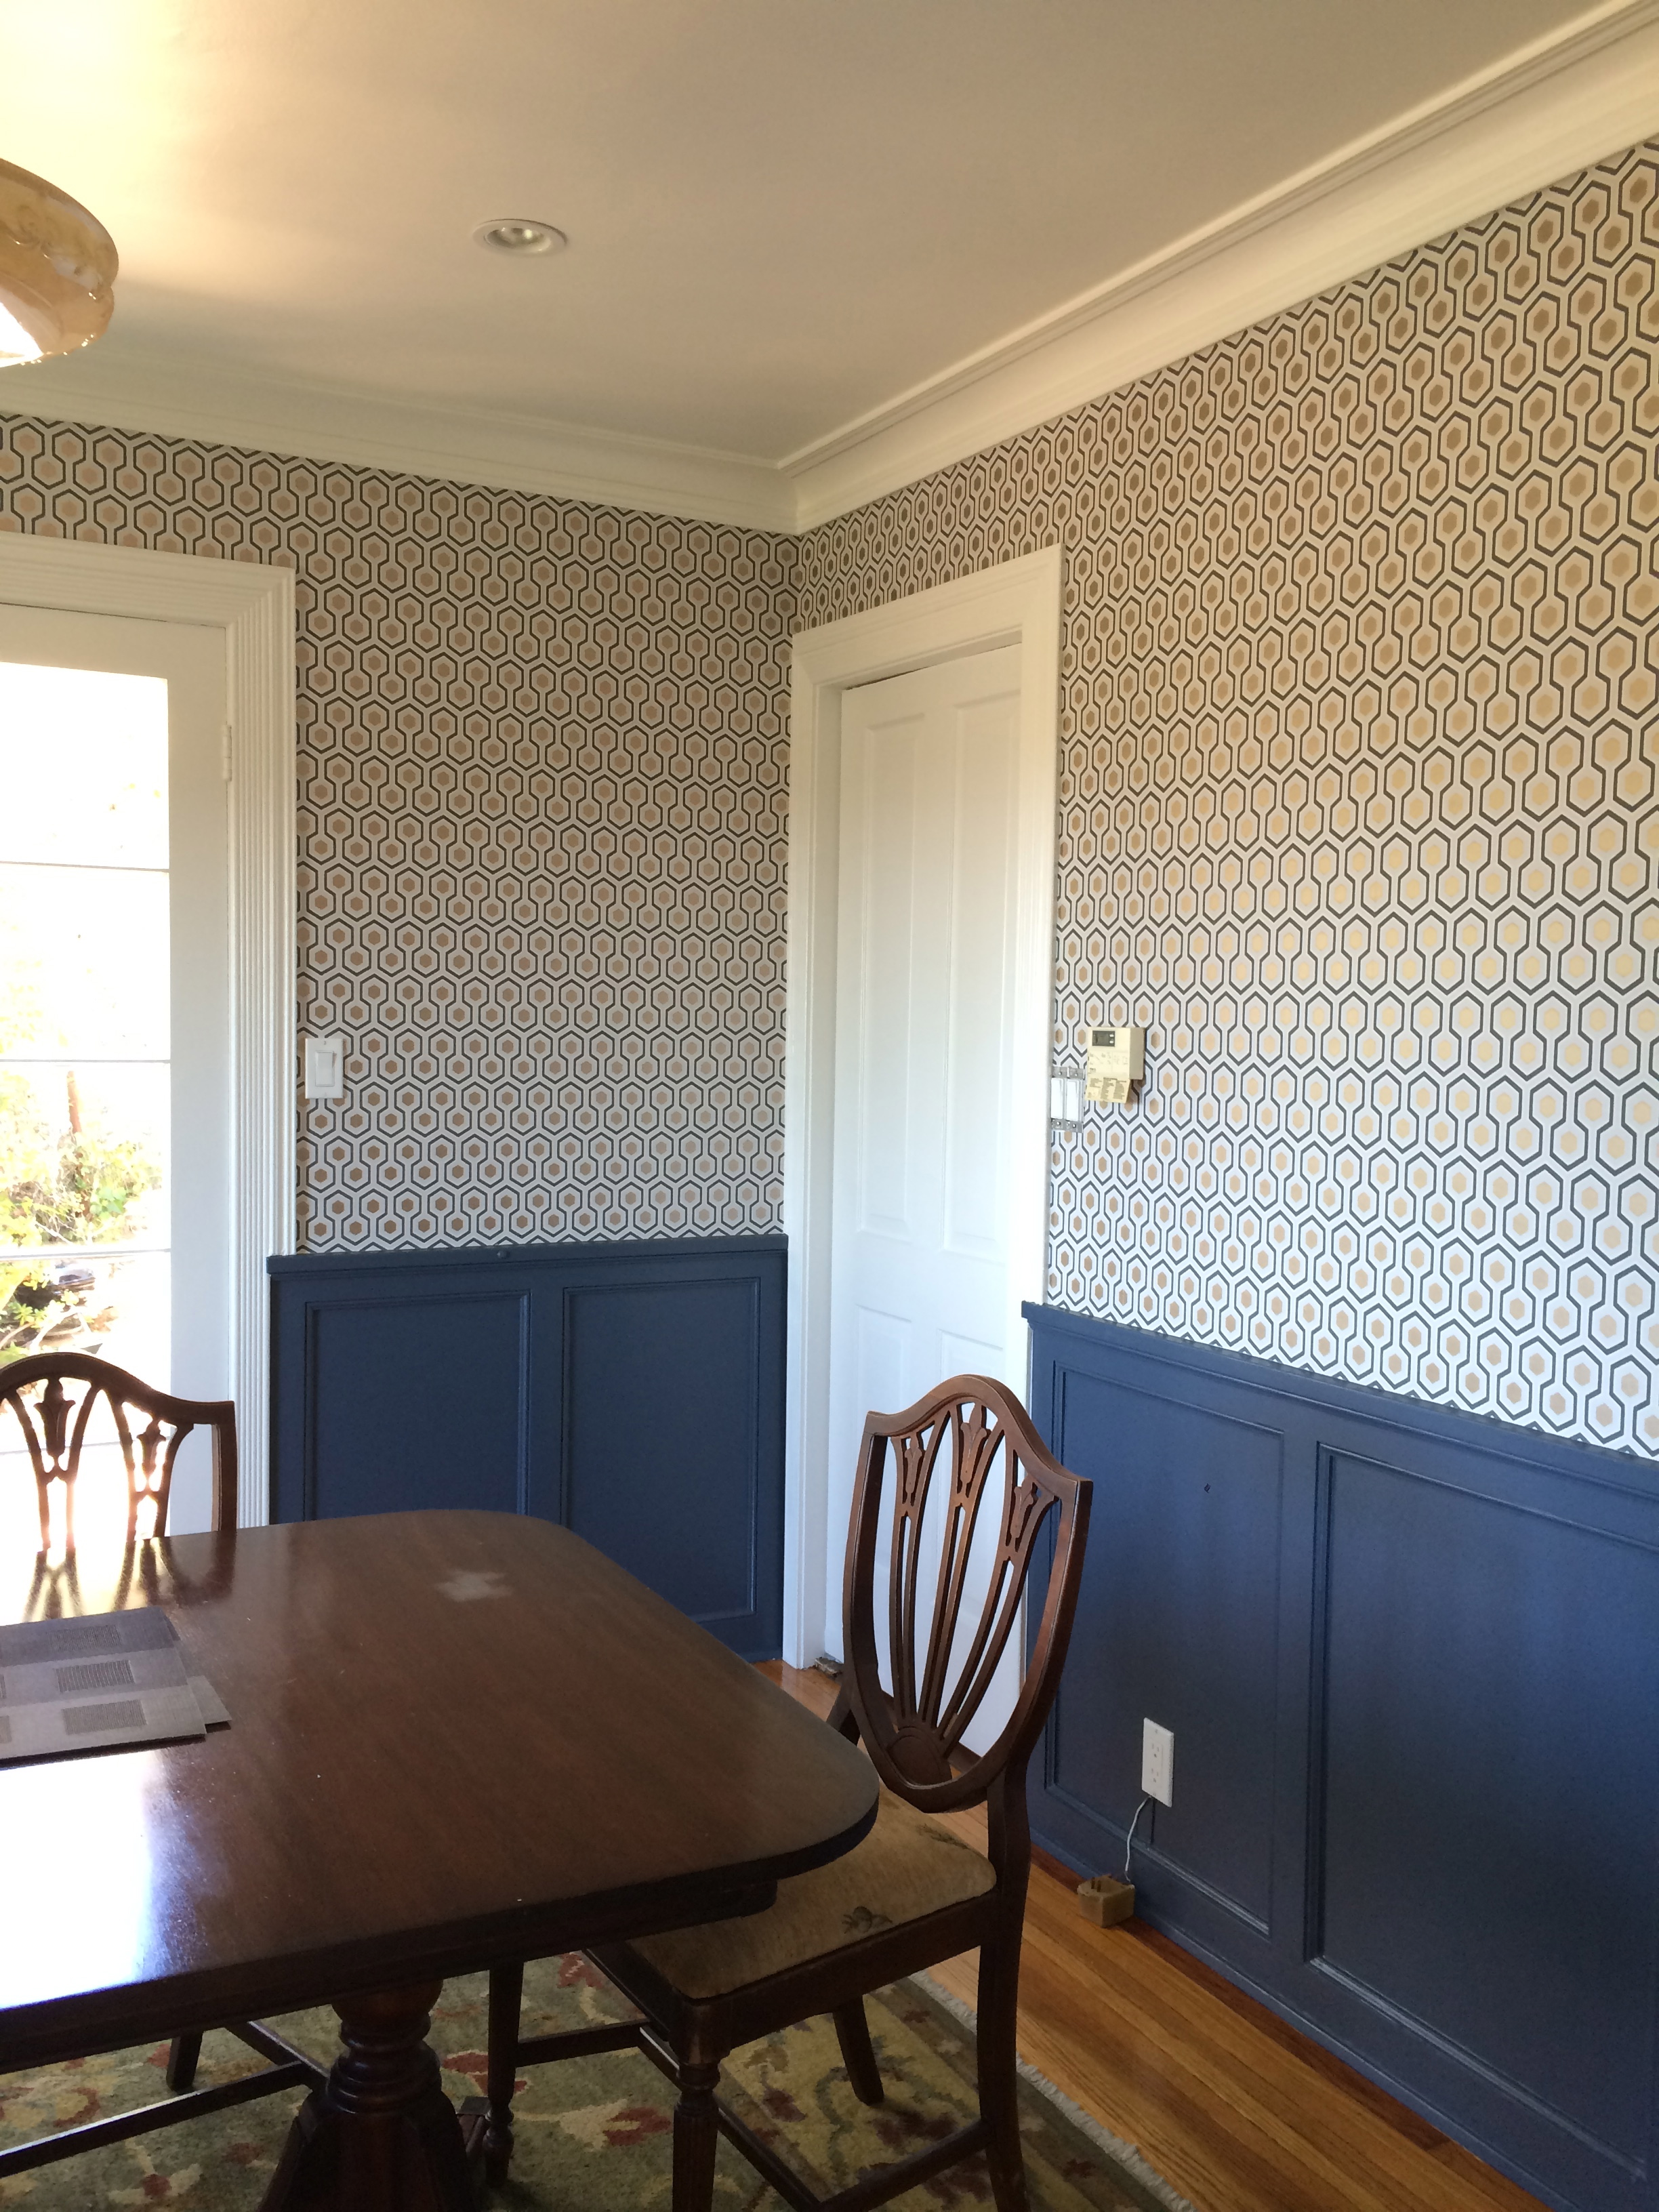 "Dining Room - AFTER / We used all Benjamin Moore Aura paints -  Decorator's White  on trim and ceiling, and  Evening Dove  on the wainscoting and built-ins. We ordered the ""Hicks Hexagon"" wallpaper through Walnut."